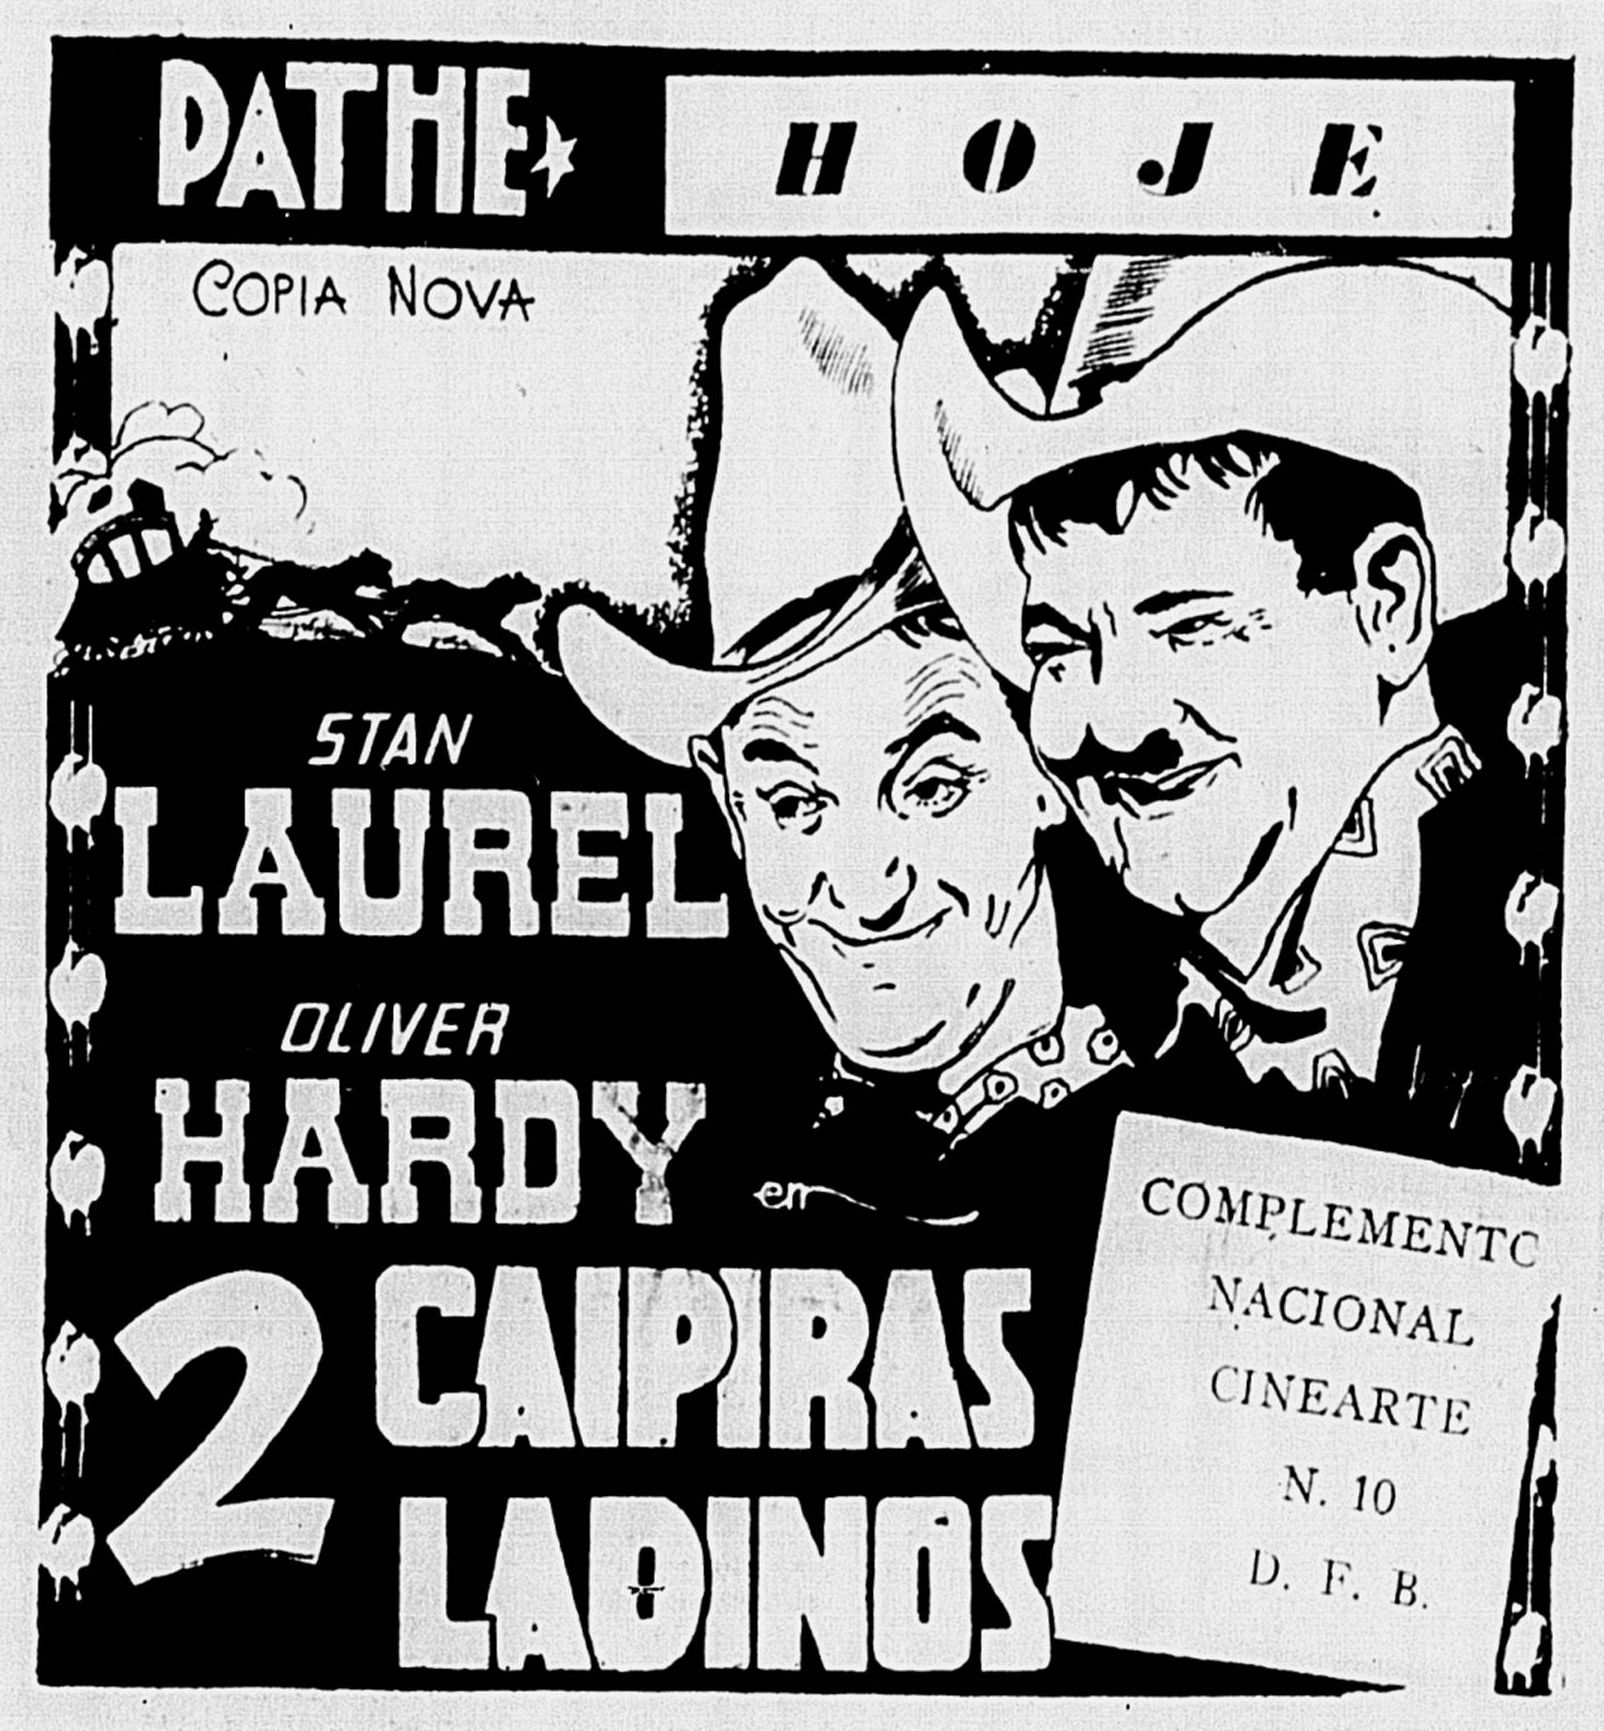 1937 - WAY OUT WEST - James W. Horne - 1942 reissue - (CORREIO DA MANHA, Thursday, June 18, 1942, Rio de Janeiro, Brazil)